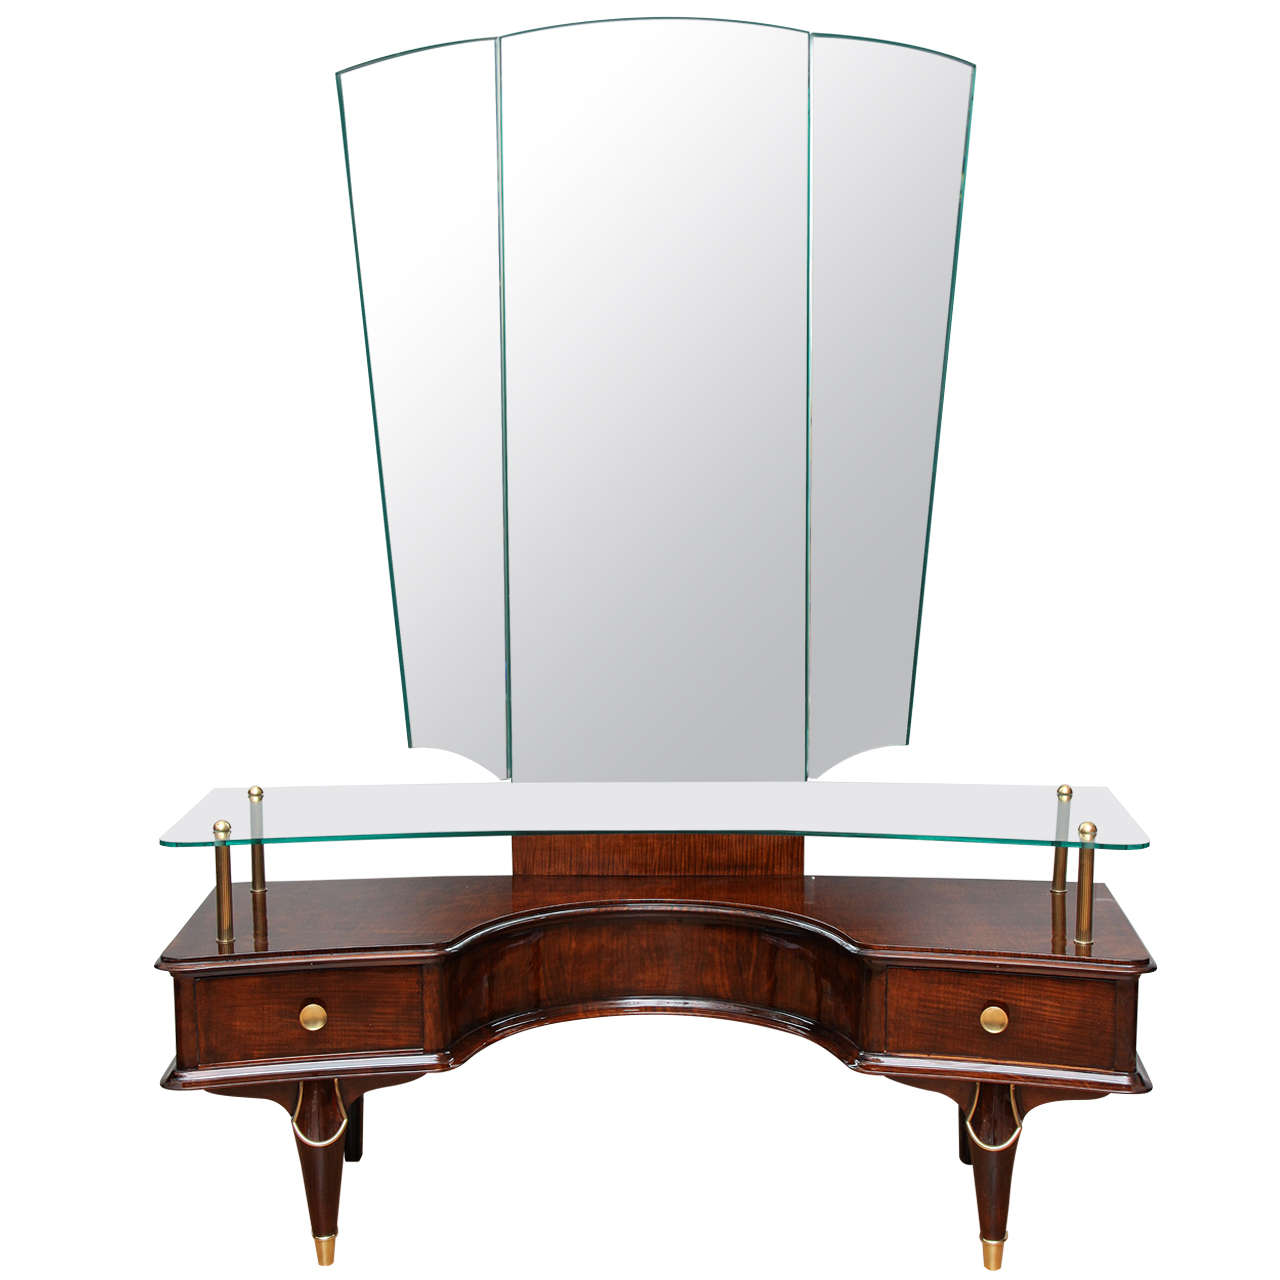 Fabulous art deco coiffeuse dressing table for sale at 1stdibs for Dressing table